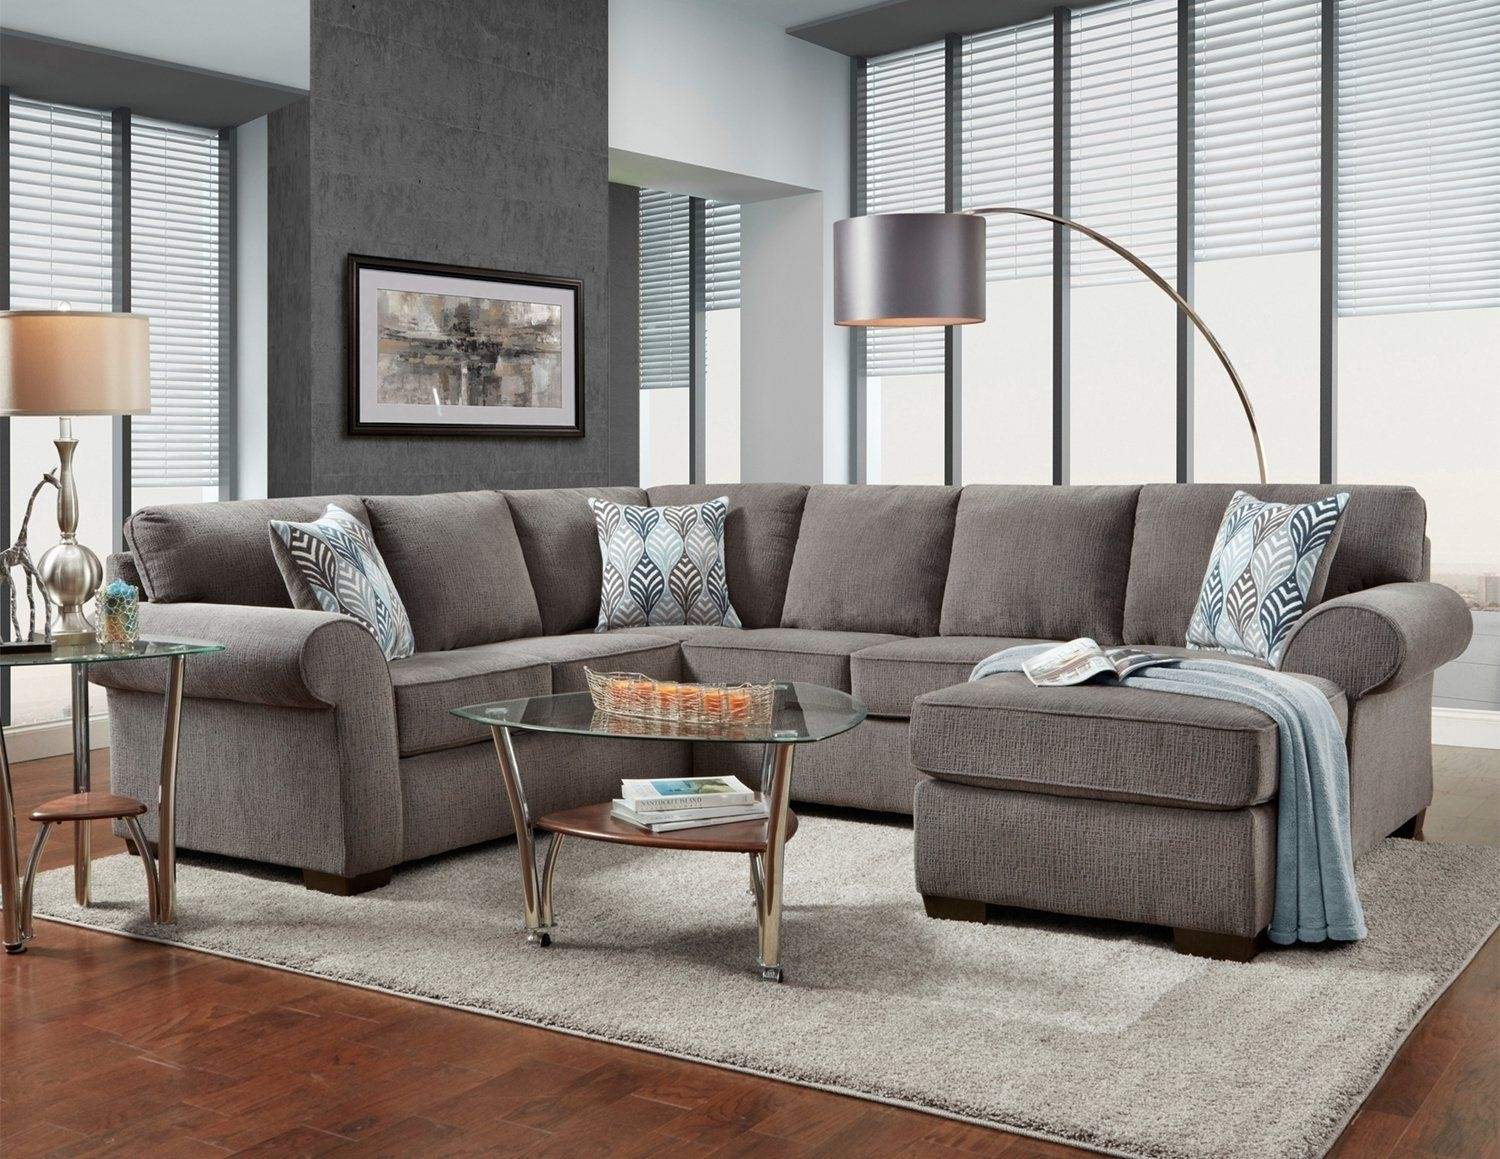 Affordable Furniture Charisma Smoke Sectional Sofa | For The Home Inside Sierra Down 3 Piece Sectionals With Laf Chaise (View 14 of 25)